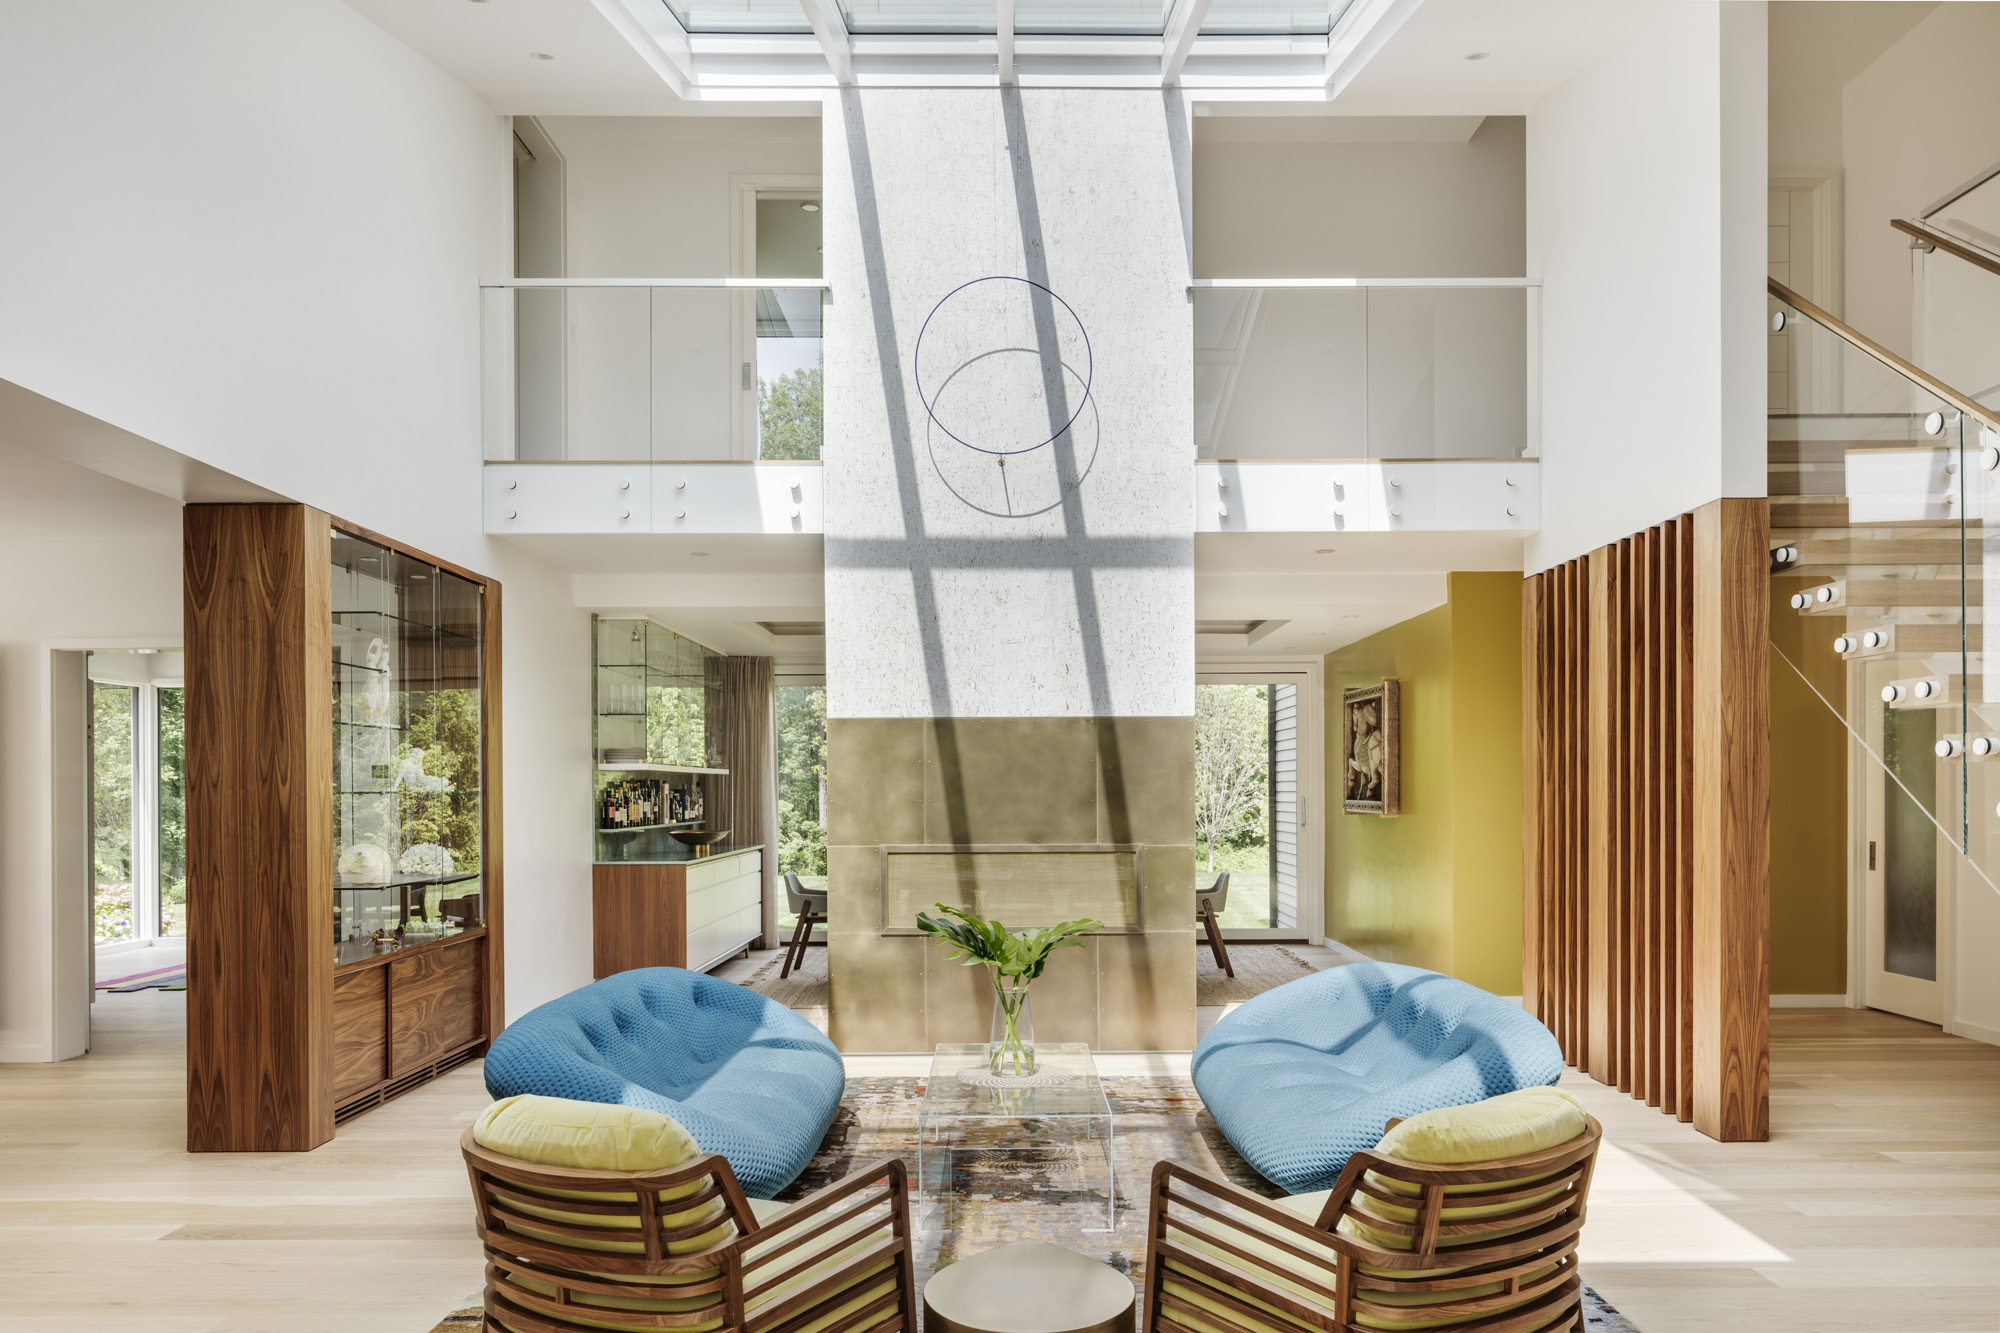 According to Vastu Shastra principles, the center of the design should be an open courtyard; however, given harsh New England winters, the designers chose to craft a large, openliving area with double-height ceilings and an expansive skylight instead. As one of the key aspects of Vastu Shastra is integration with nature, the skylight serves to enhance the connection between indoors and out, and between individual and nature. The wallpaper behind the fireplace is an Omexcofabric from Romo, while the cladding is from Make Architectural Metalworking. The modern fireplace is from Town and Country, and the circle light and coffee table are both from DDCNYC.